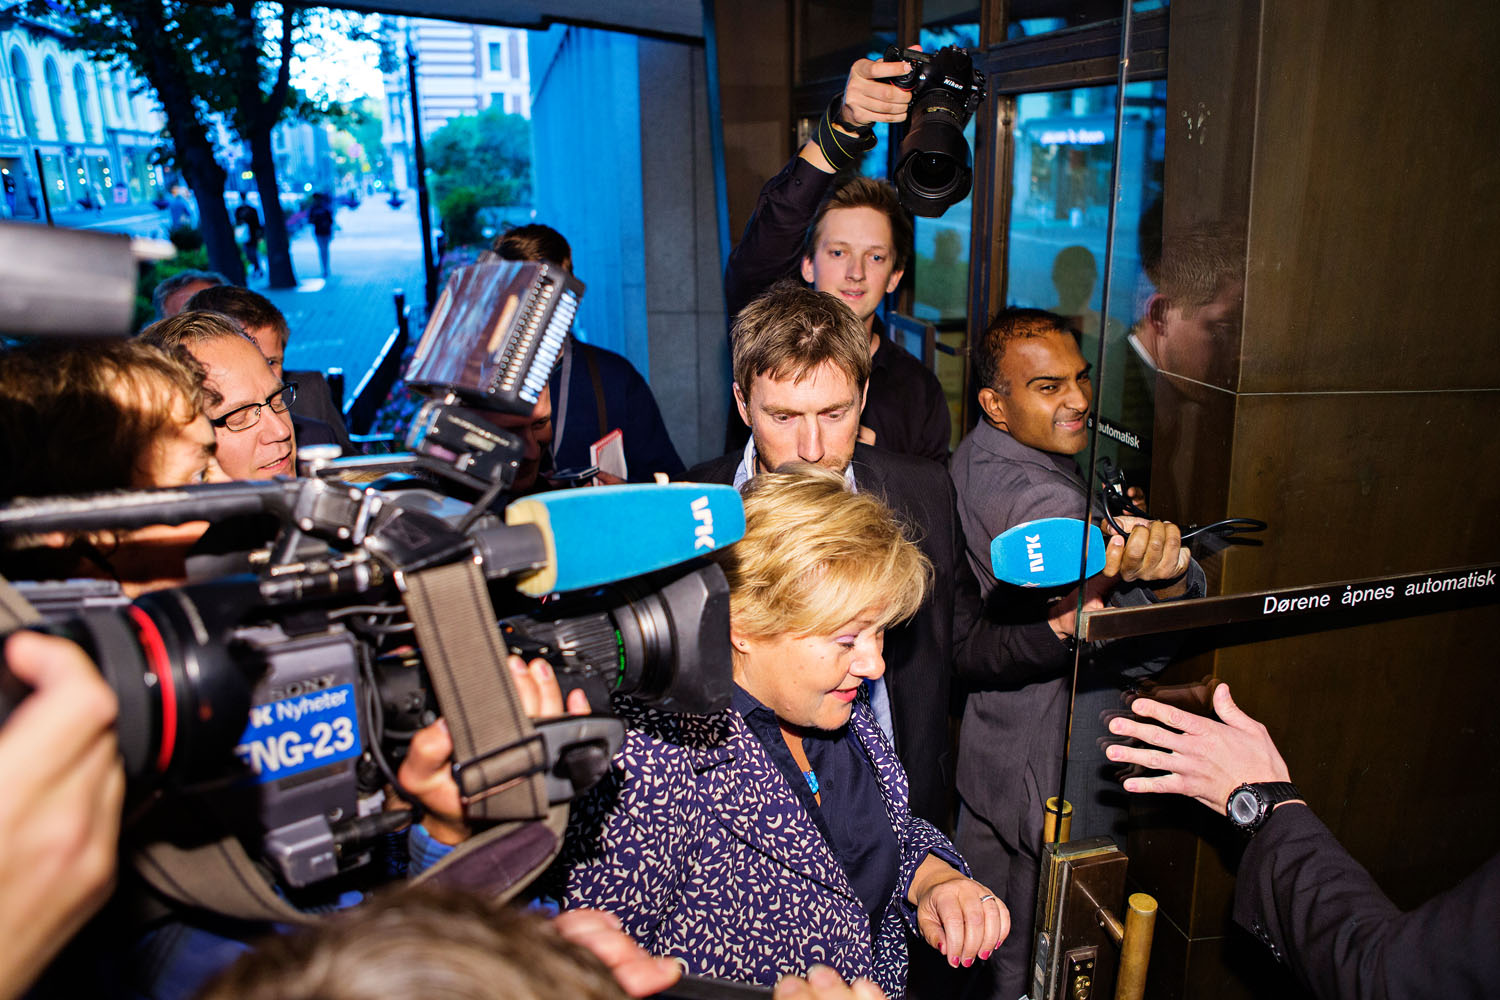 Erna Solberg, during election 2013